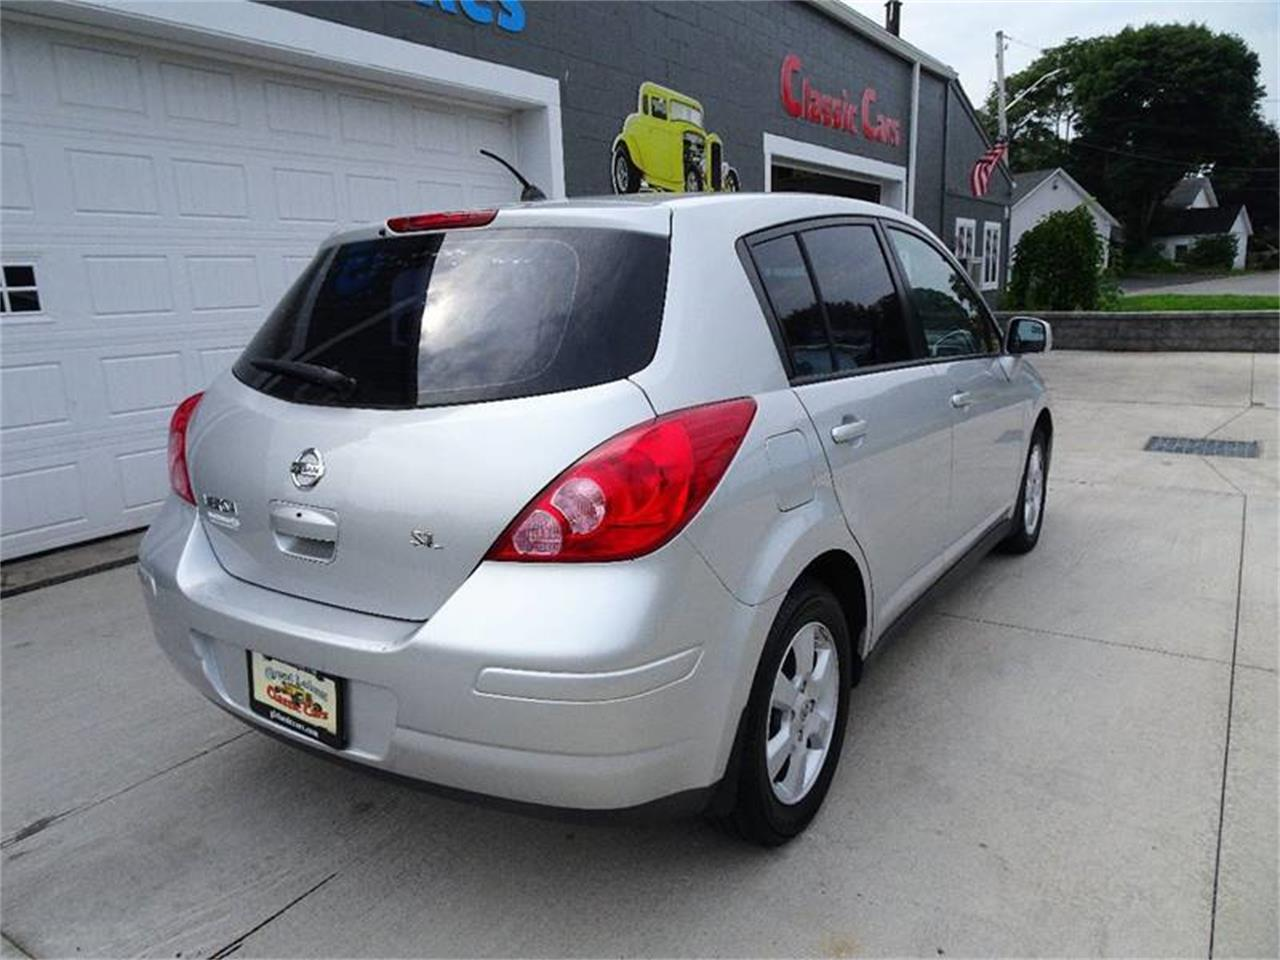 2007 Nissan Versa for sale in Hilton, NY – photo 36